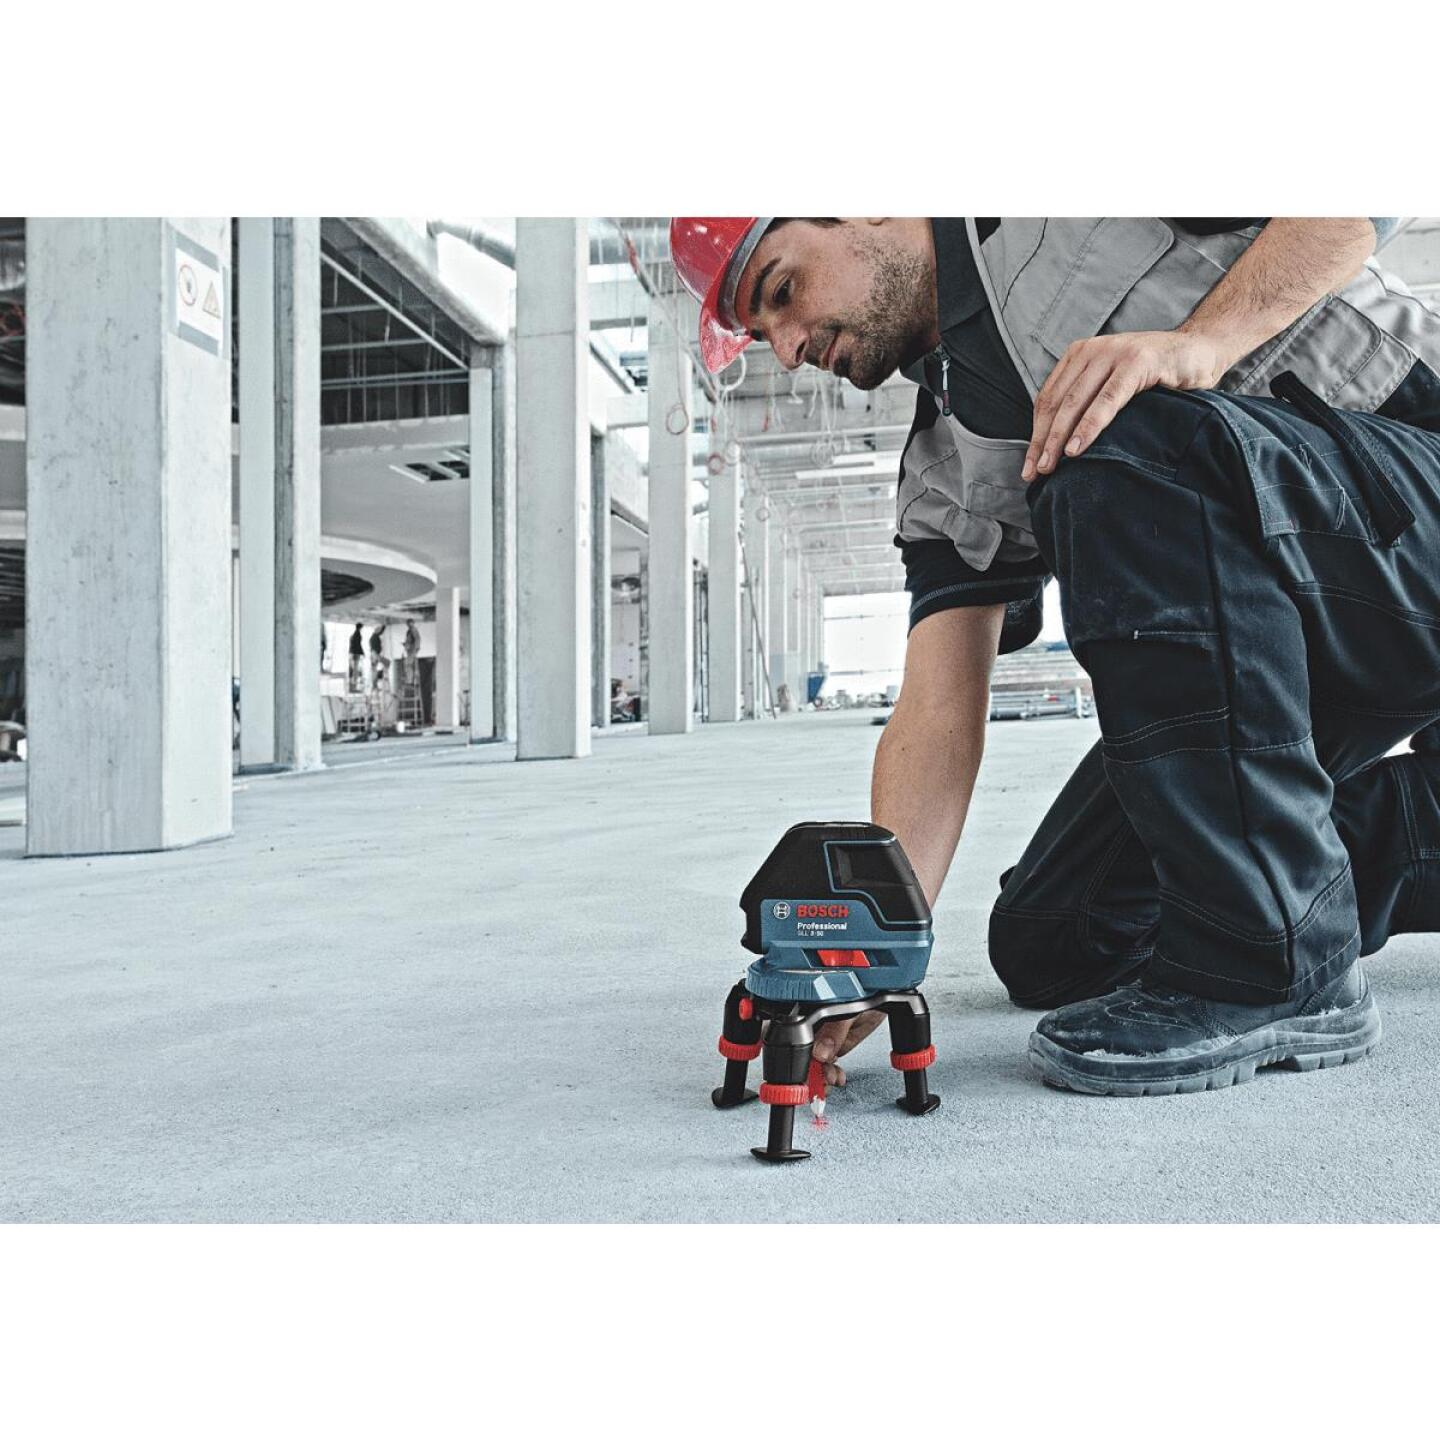 Bosch 165 Ft. Self-Leveling 360 Degree 3-Plane and Alignment Line Laser Level with Layout Beam Image 3